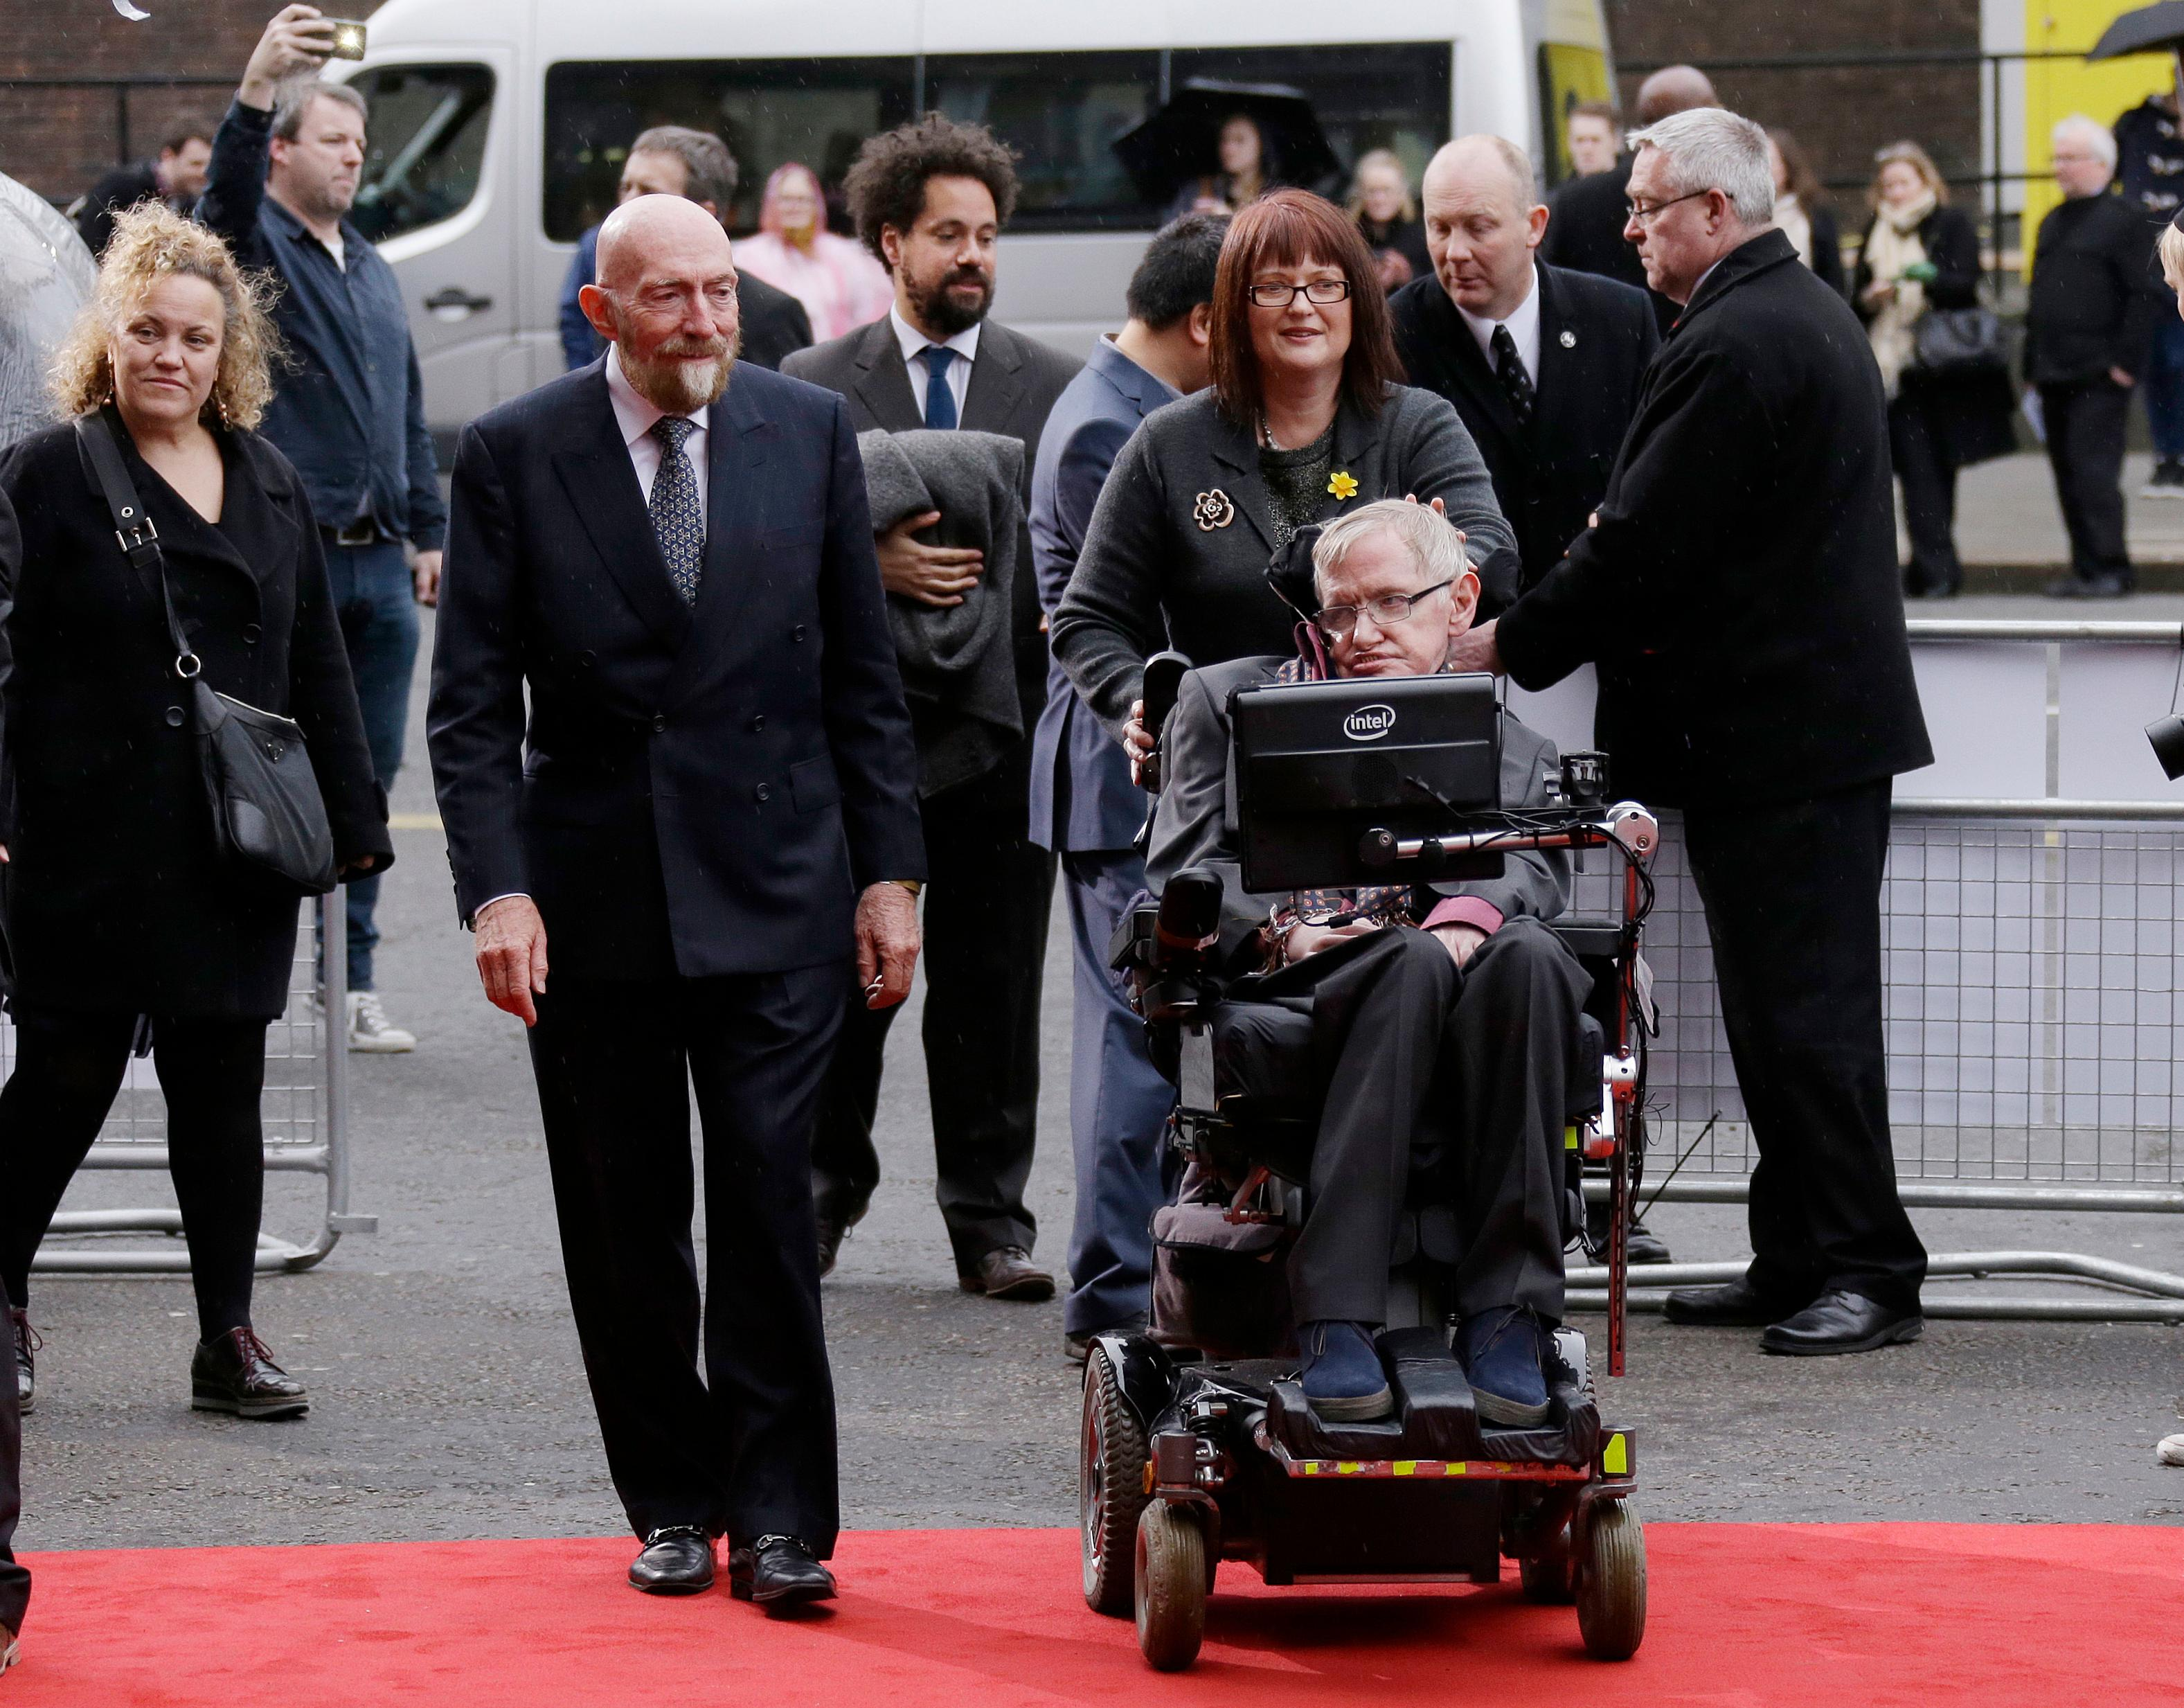 FILE - In this file photo dated Monday, 30 March, 2015, Professor Stephen Hawking, front right, and Professor Kip Thorne, left, arrive for the Interstellar Live show at the Royal Albert Hall in London. The Nobel Physics Prize 2017 is announced Monday Oct. 3, 2017, awarded jointly to three scientists Rainer Weiss of the Massachusetts Institute of Technology, and Barry Barish and Kip Thorne of the California Institute of Technology. (Photo by Joel Ryan/Invision/AP FILE)